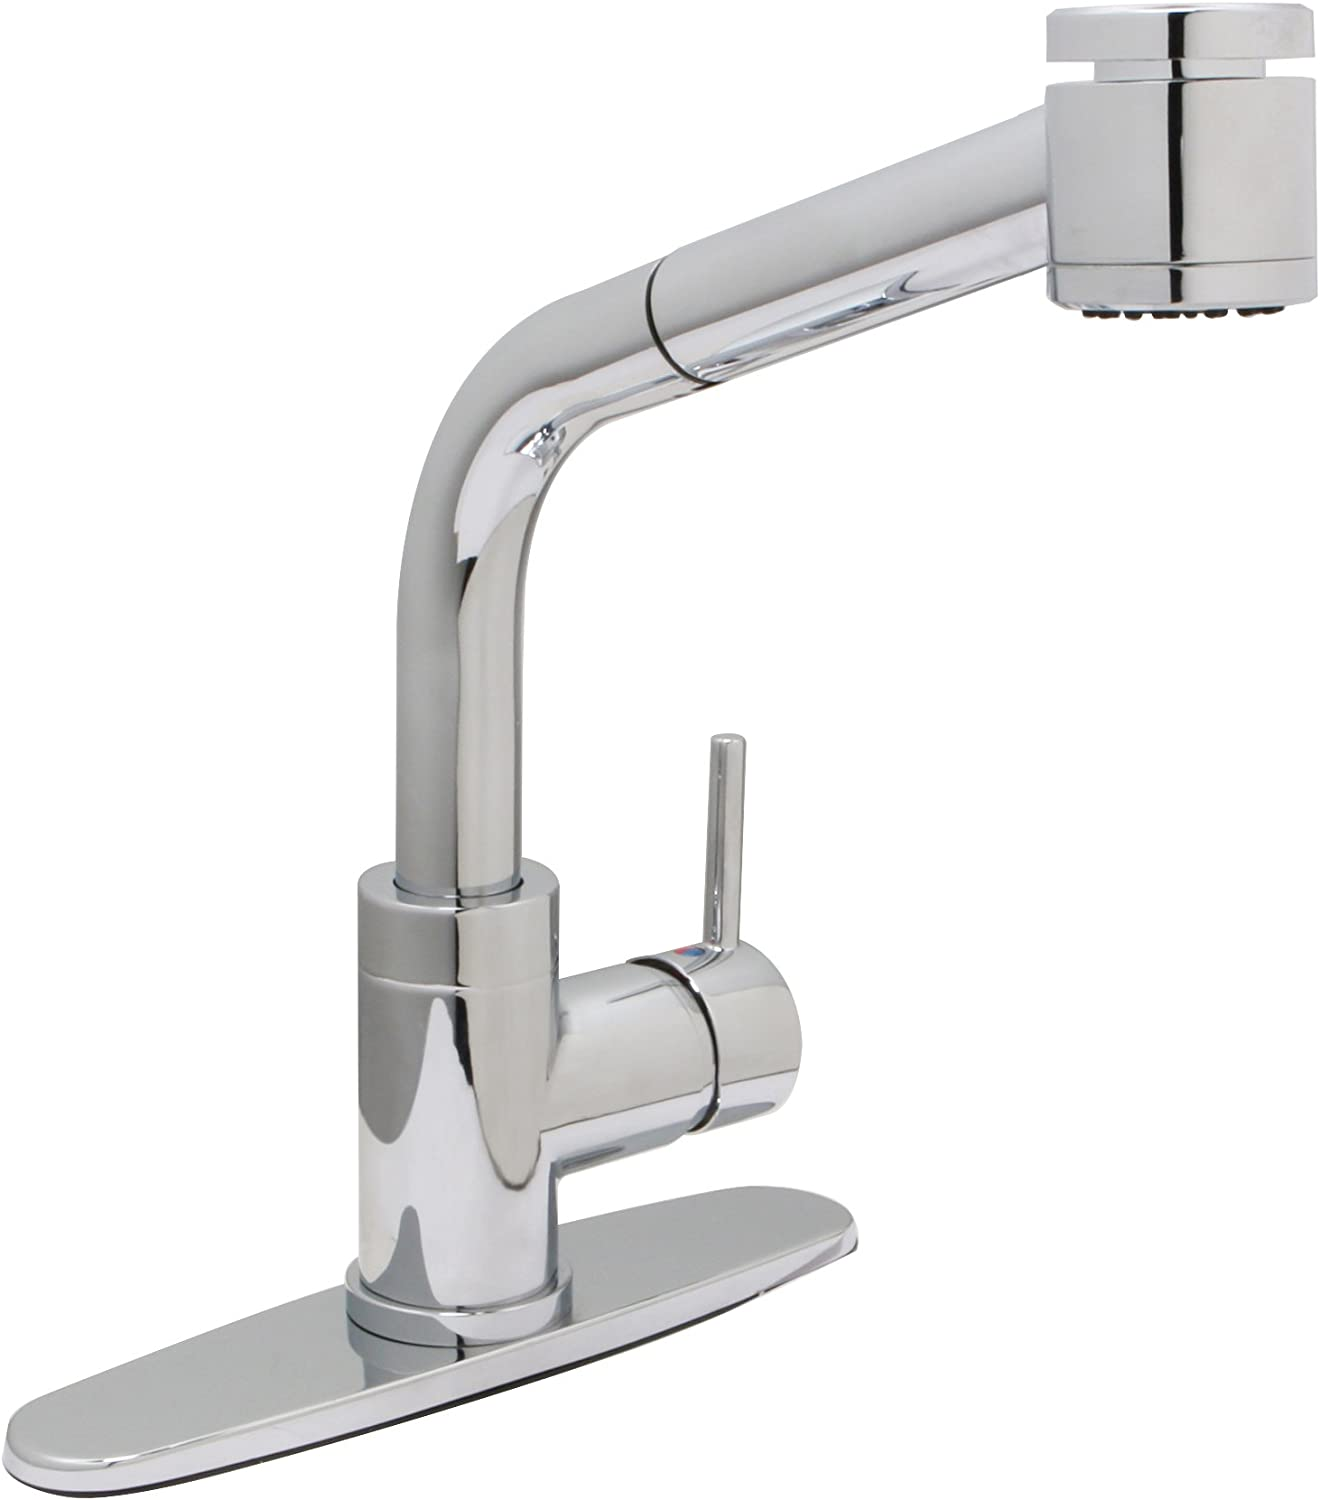 Huntington Brass 51151-01 Single-Handle High Arc Modern Pull-Out Kitchen Faucet with Sprayer and Optional Deck Plate, Chrome